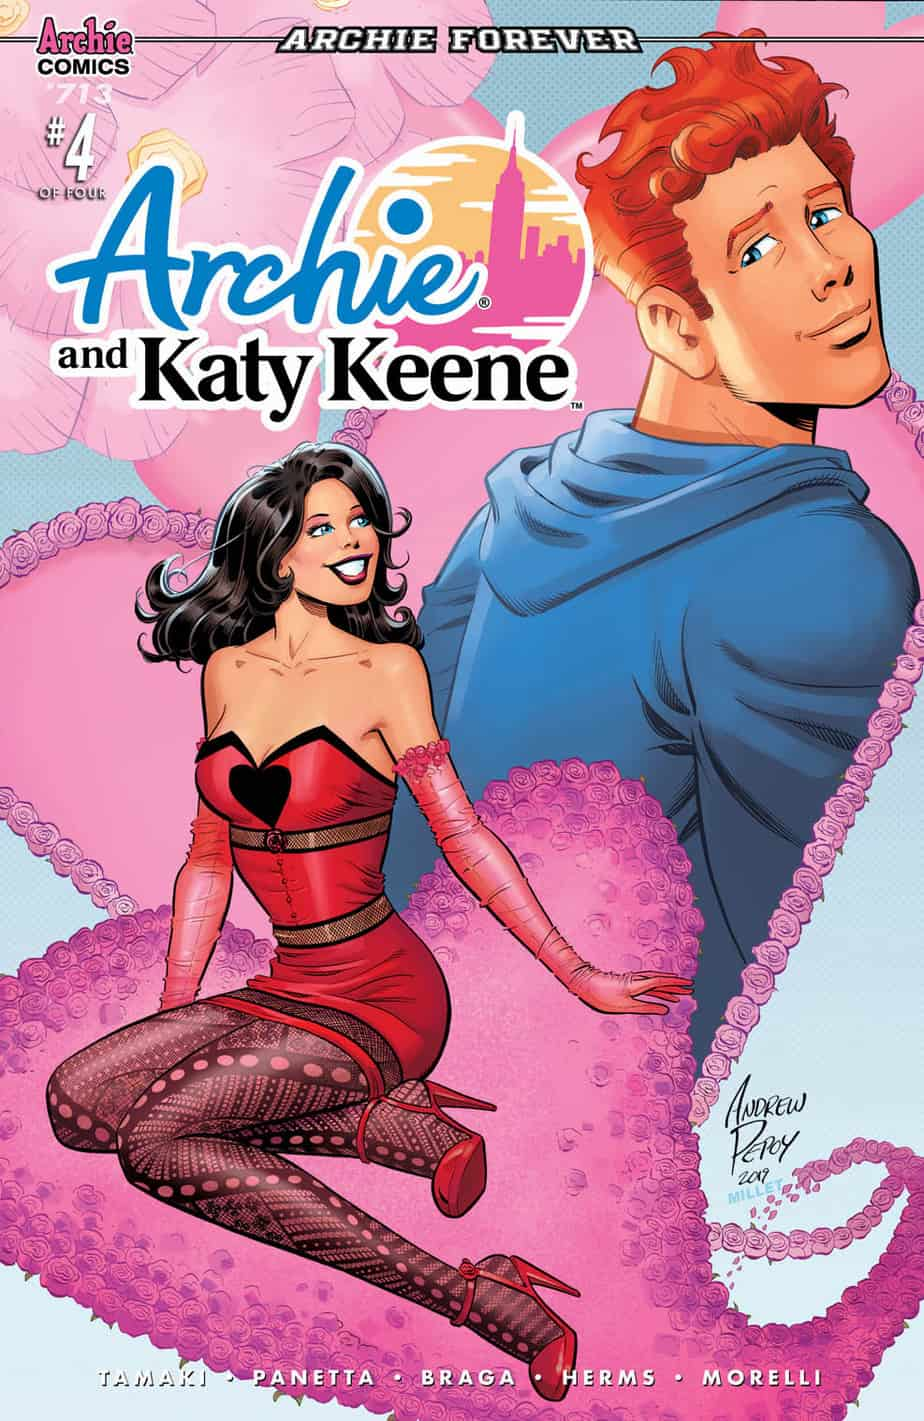 ARCHIE #713 - Cover B